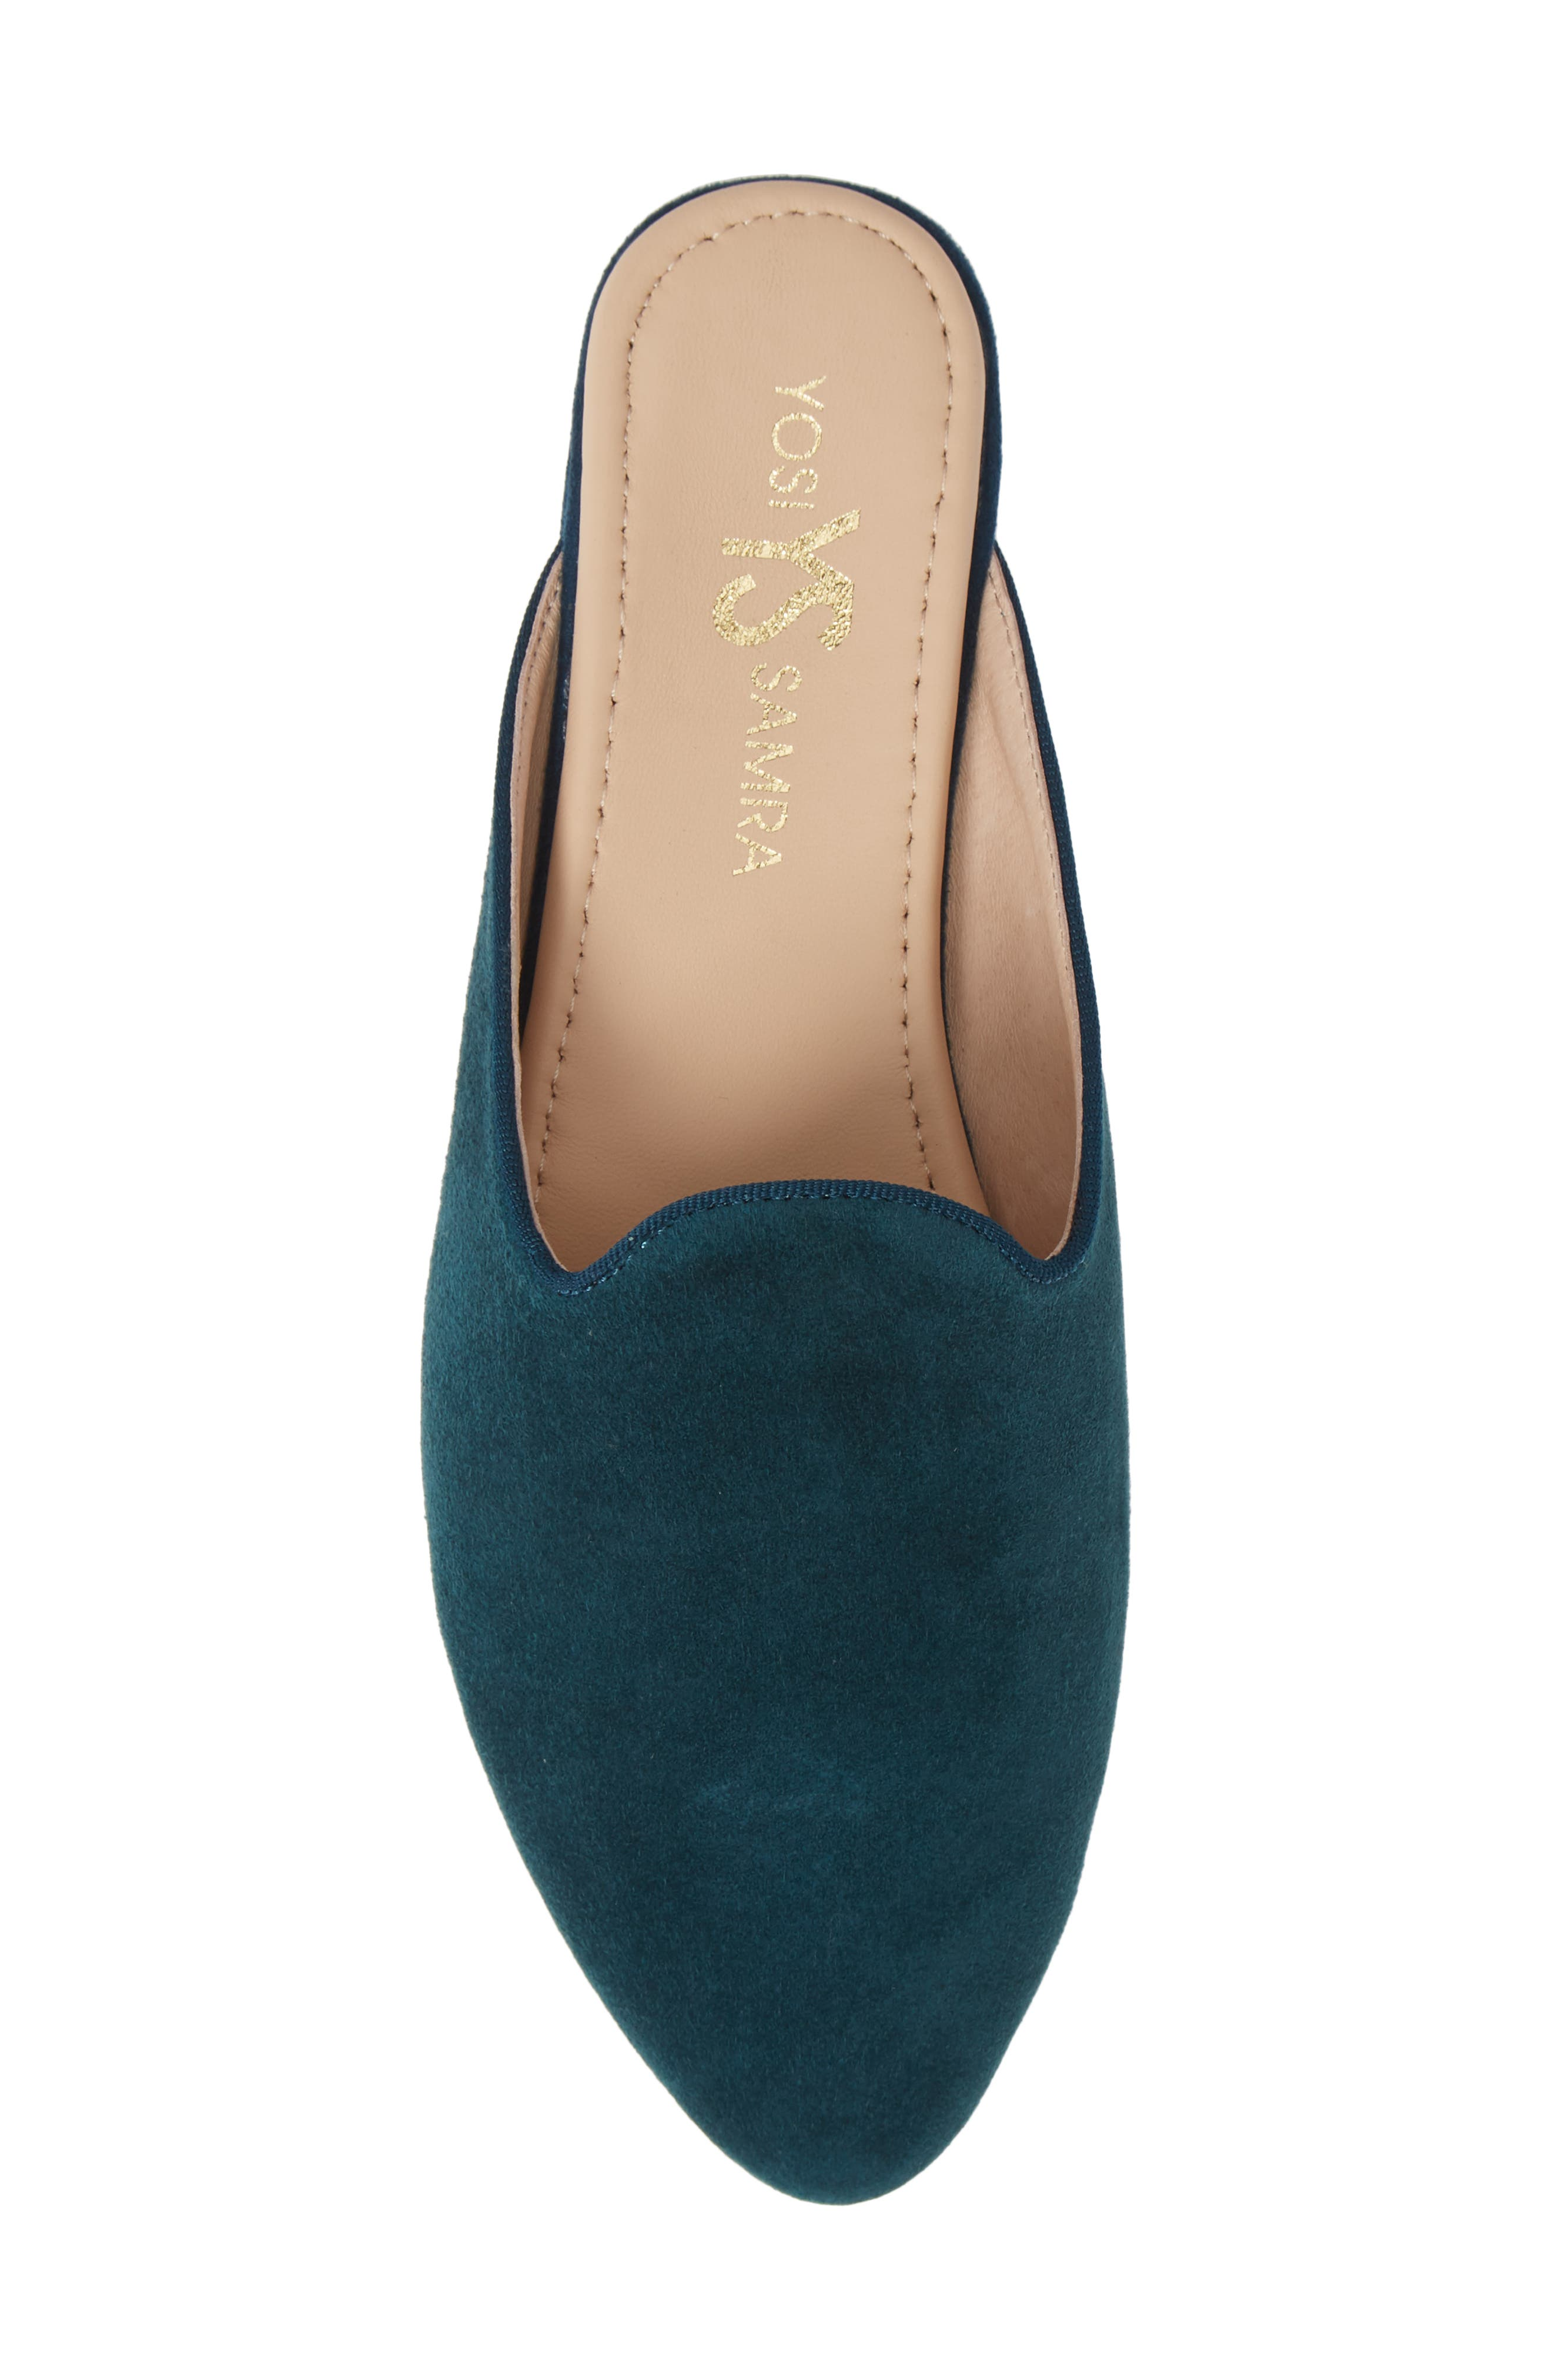 Vidi Mule,                             Alternate thumbnail 4, color,                             Teal Suede